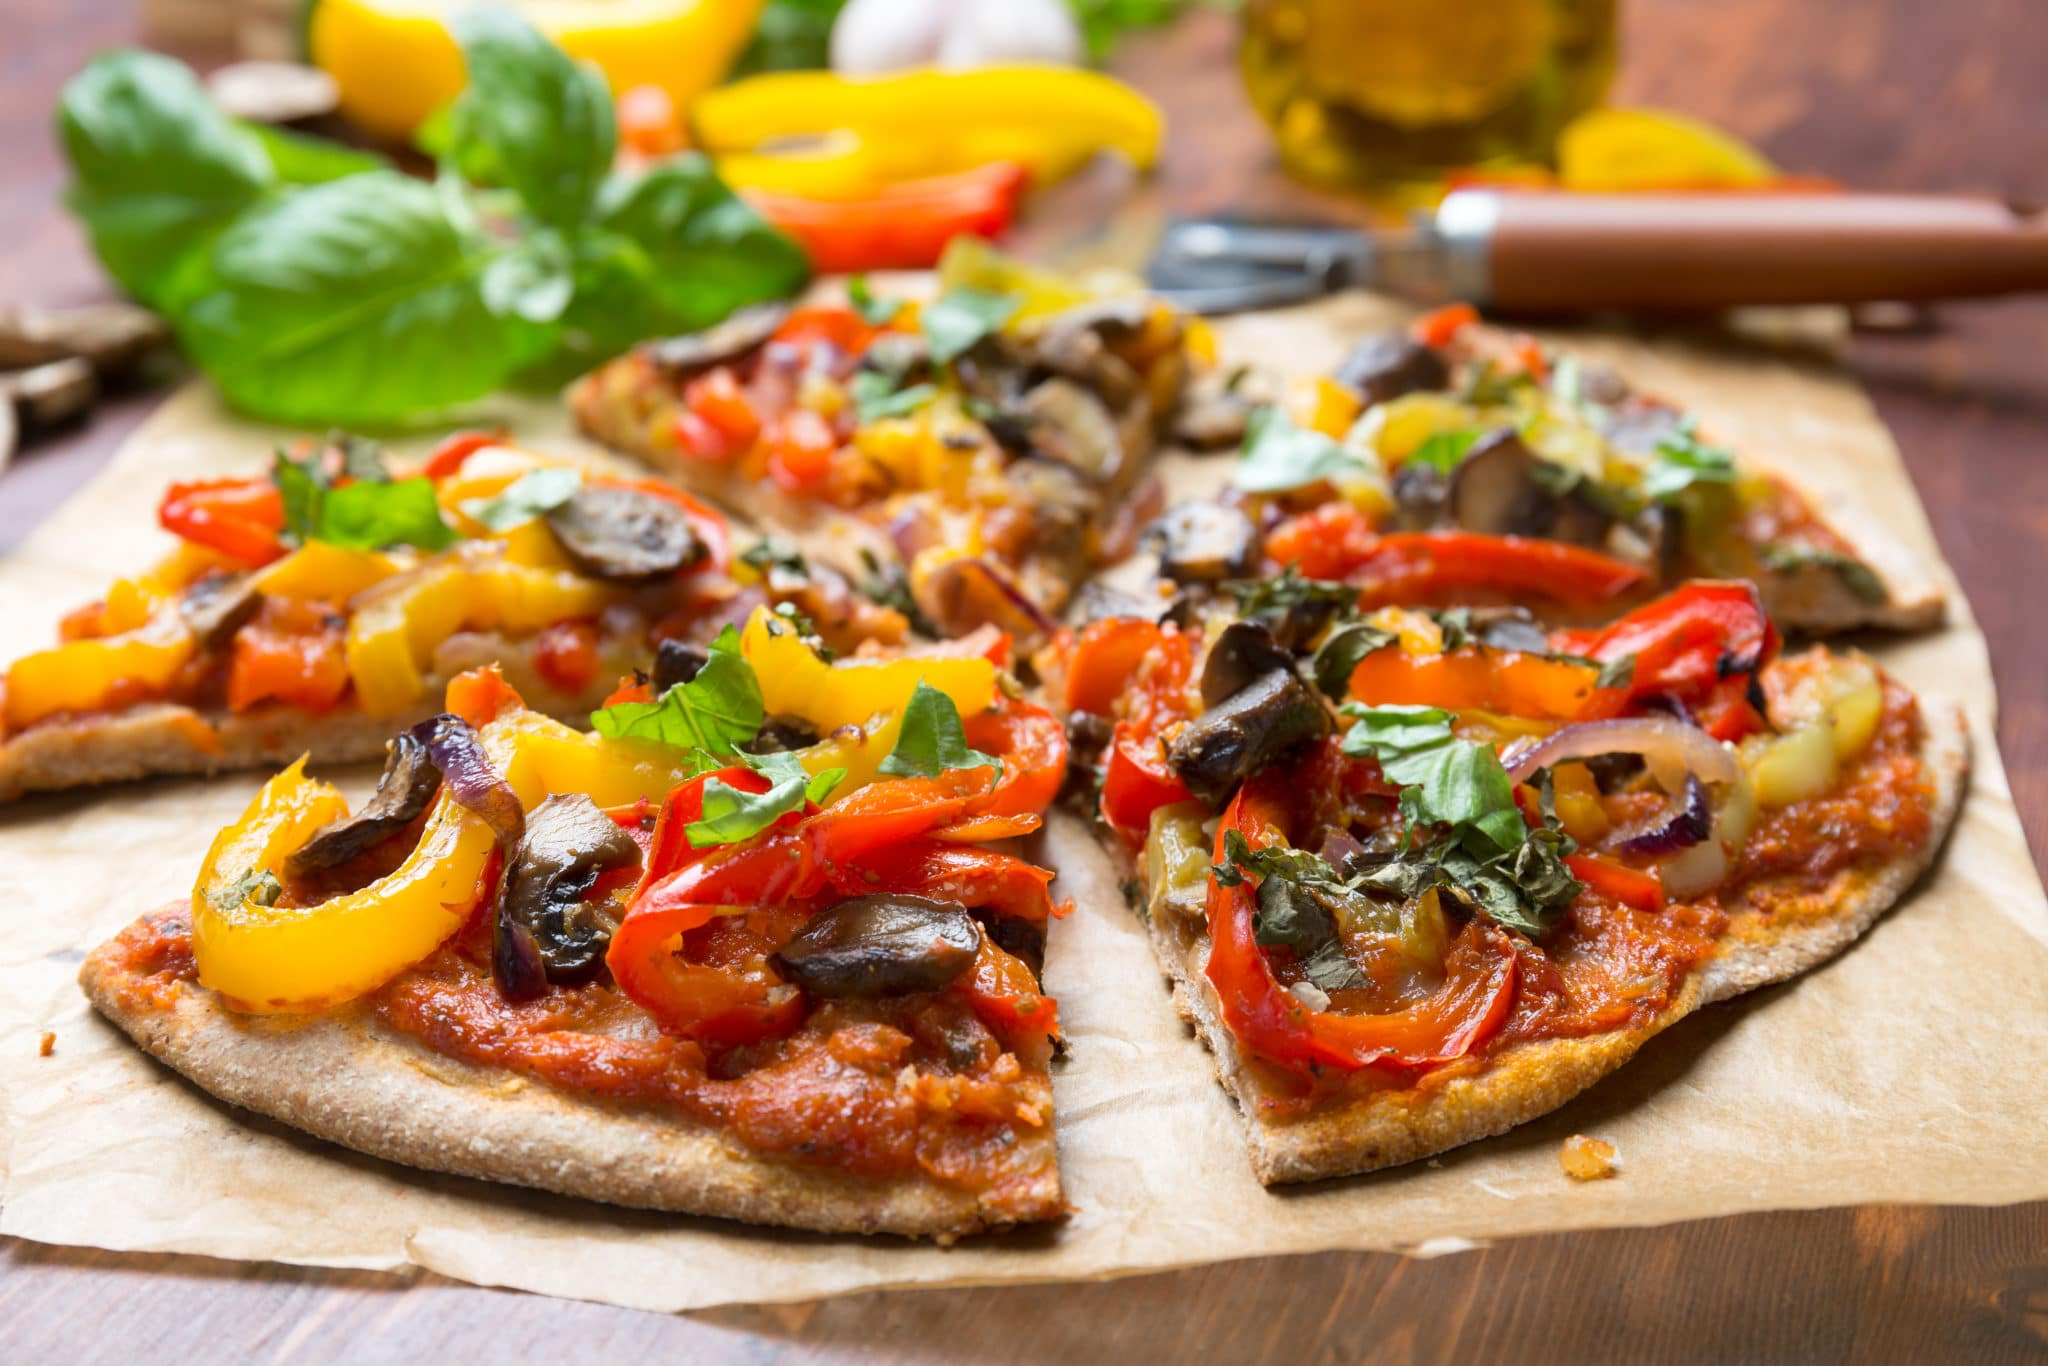 Super Healthy Sliced Vegan Whole Grain Vegetables and Mushrooms Pizza